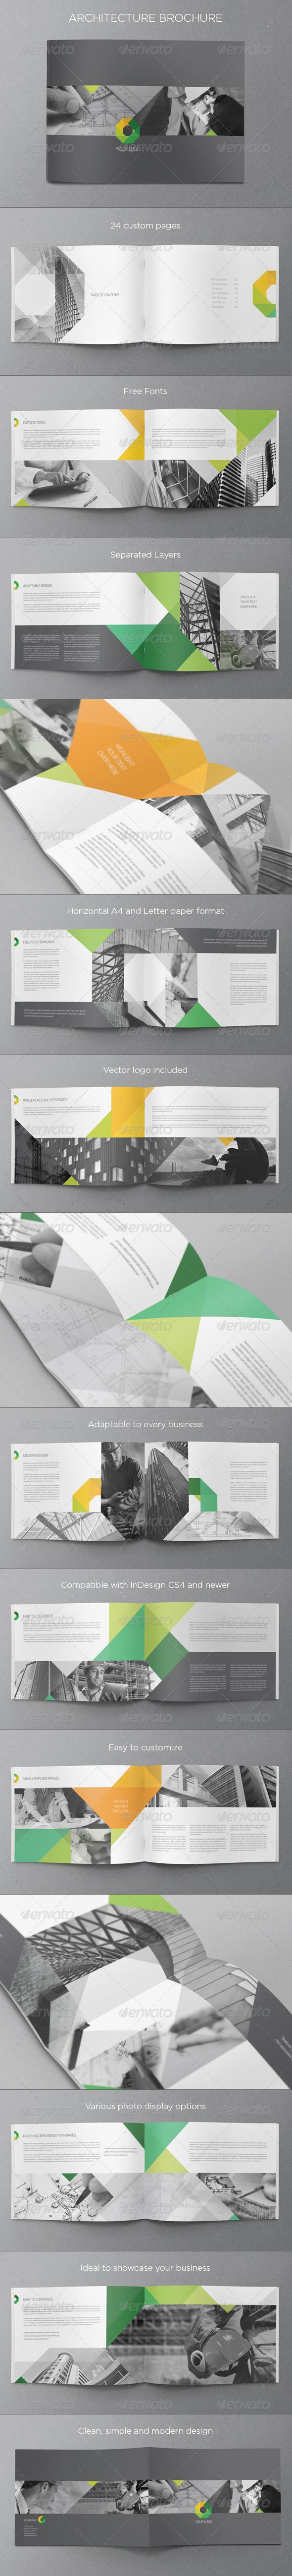 Modern Architecture Brochure  While not the same type of publication, the use of color against the black and white is very sleek. Again, the geometric patterns are nice and create a continuity between spreads.